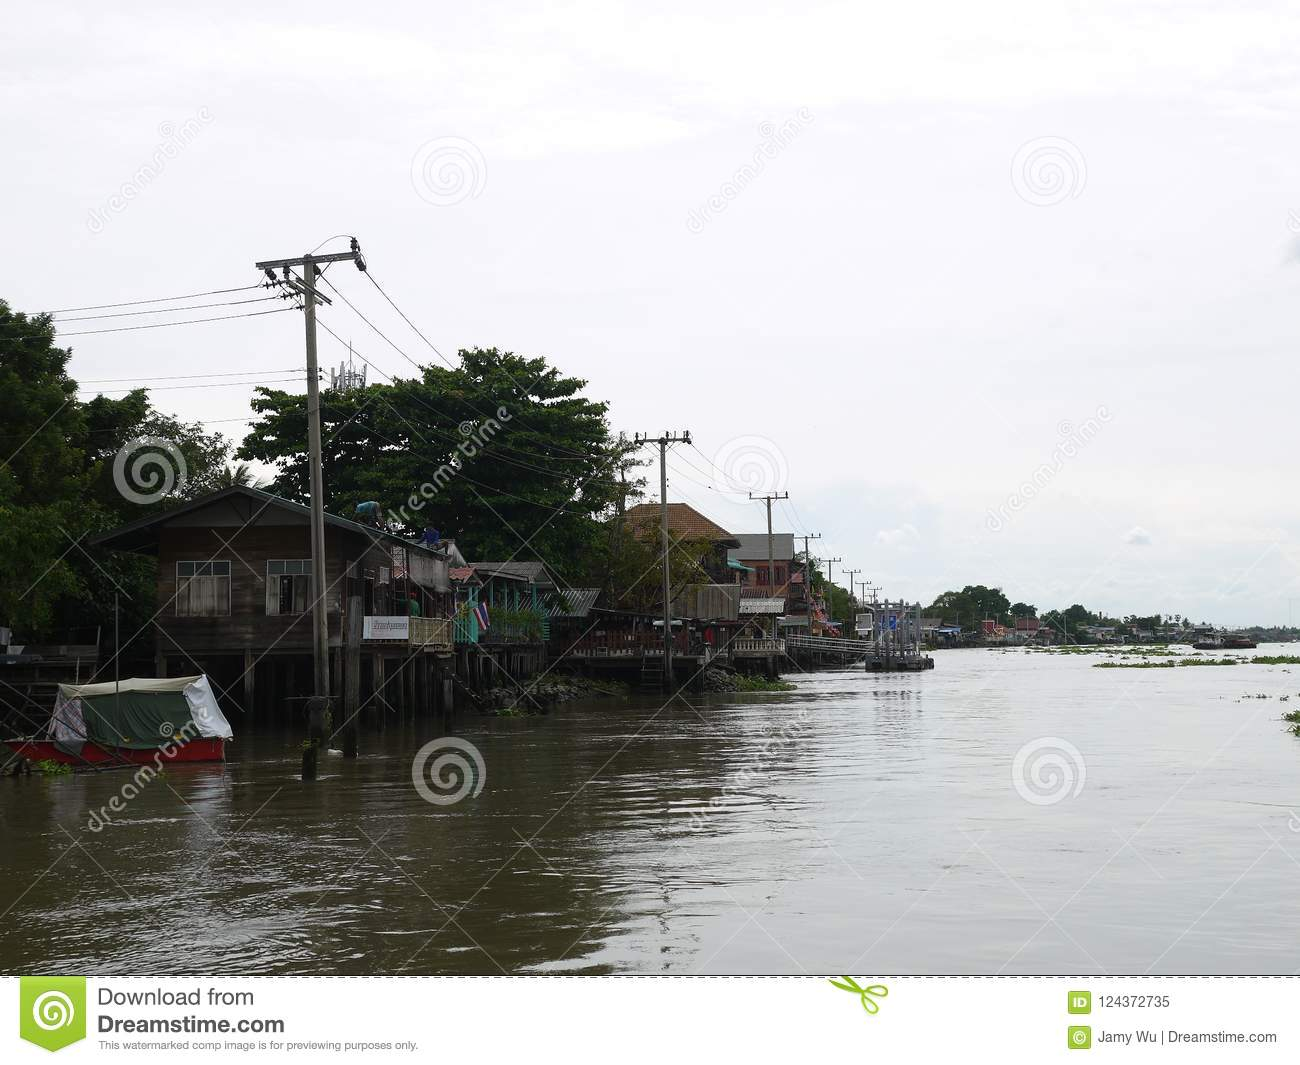 Chaophya river ecology life in the bright sunshine day, community of waterside wooden houses, temples, and parking boats.